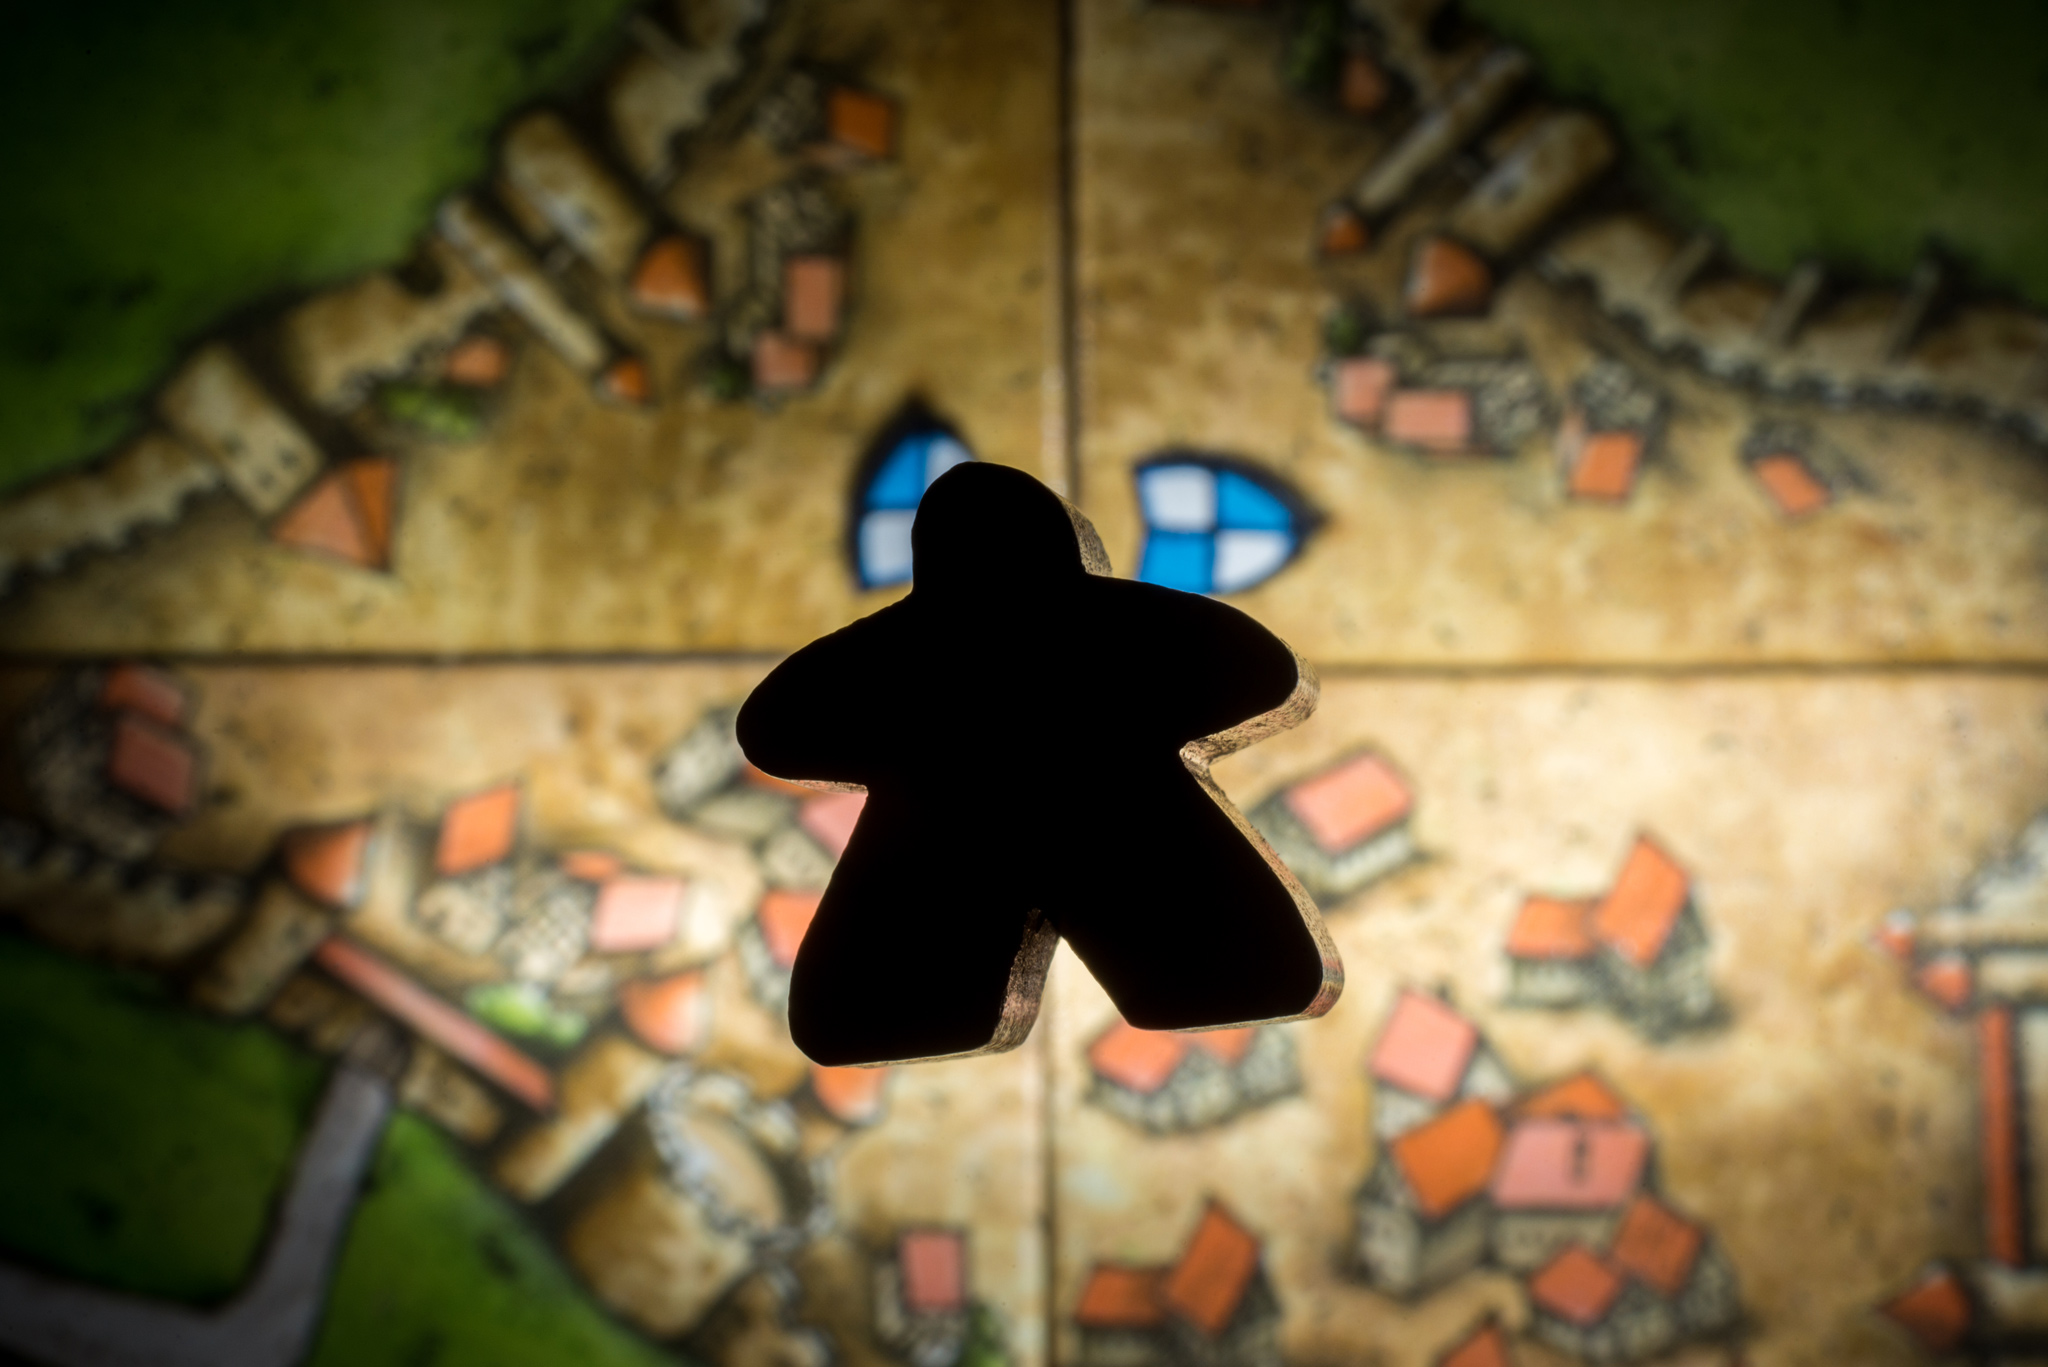 Knighted meeple in Carcassonne